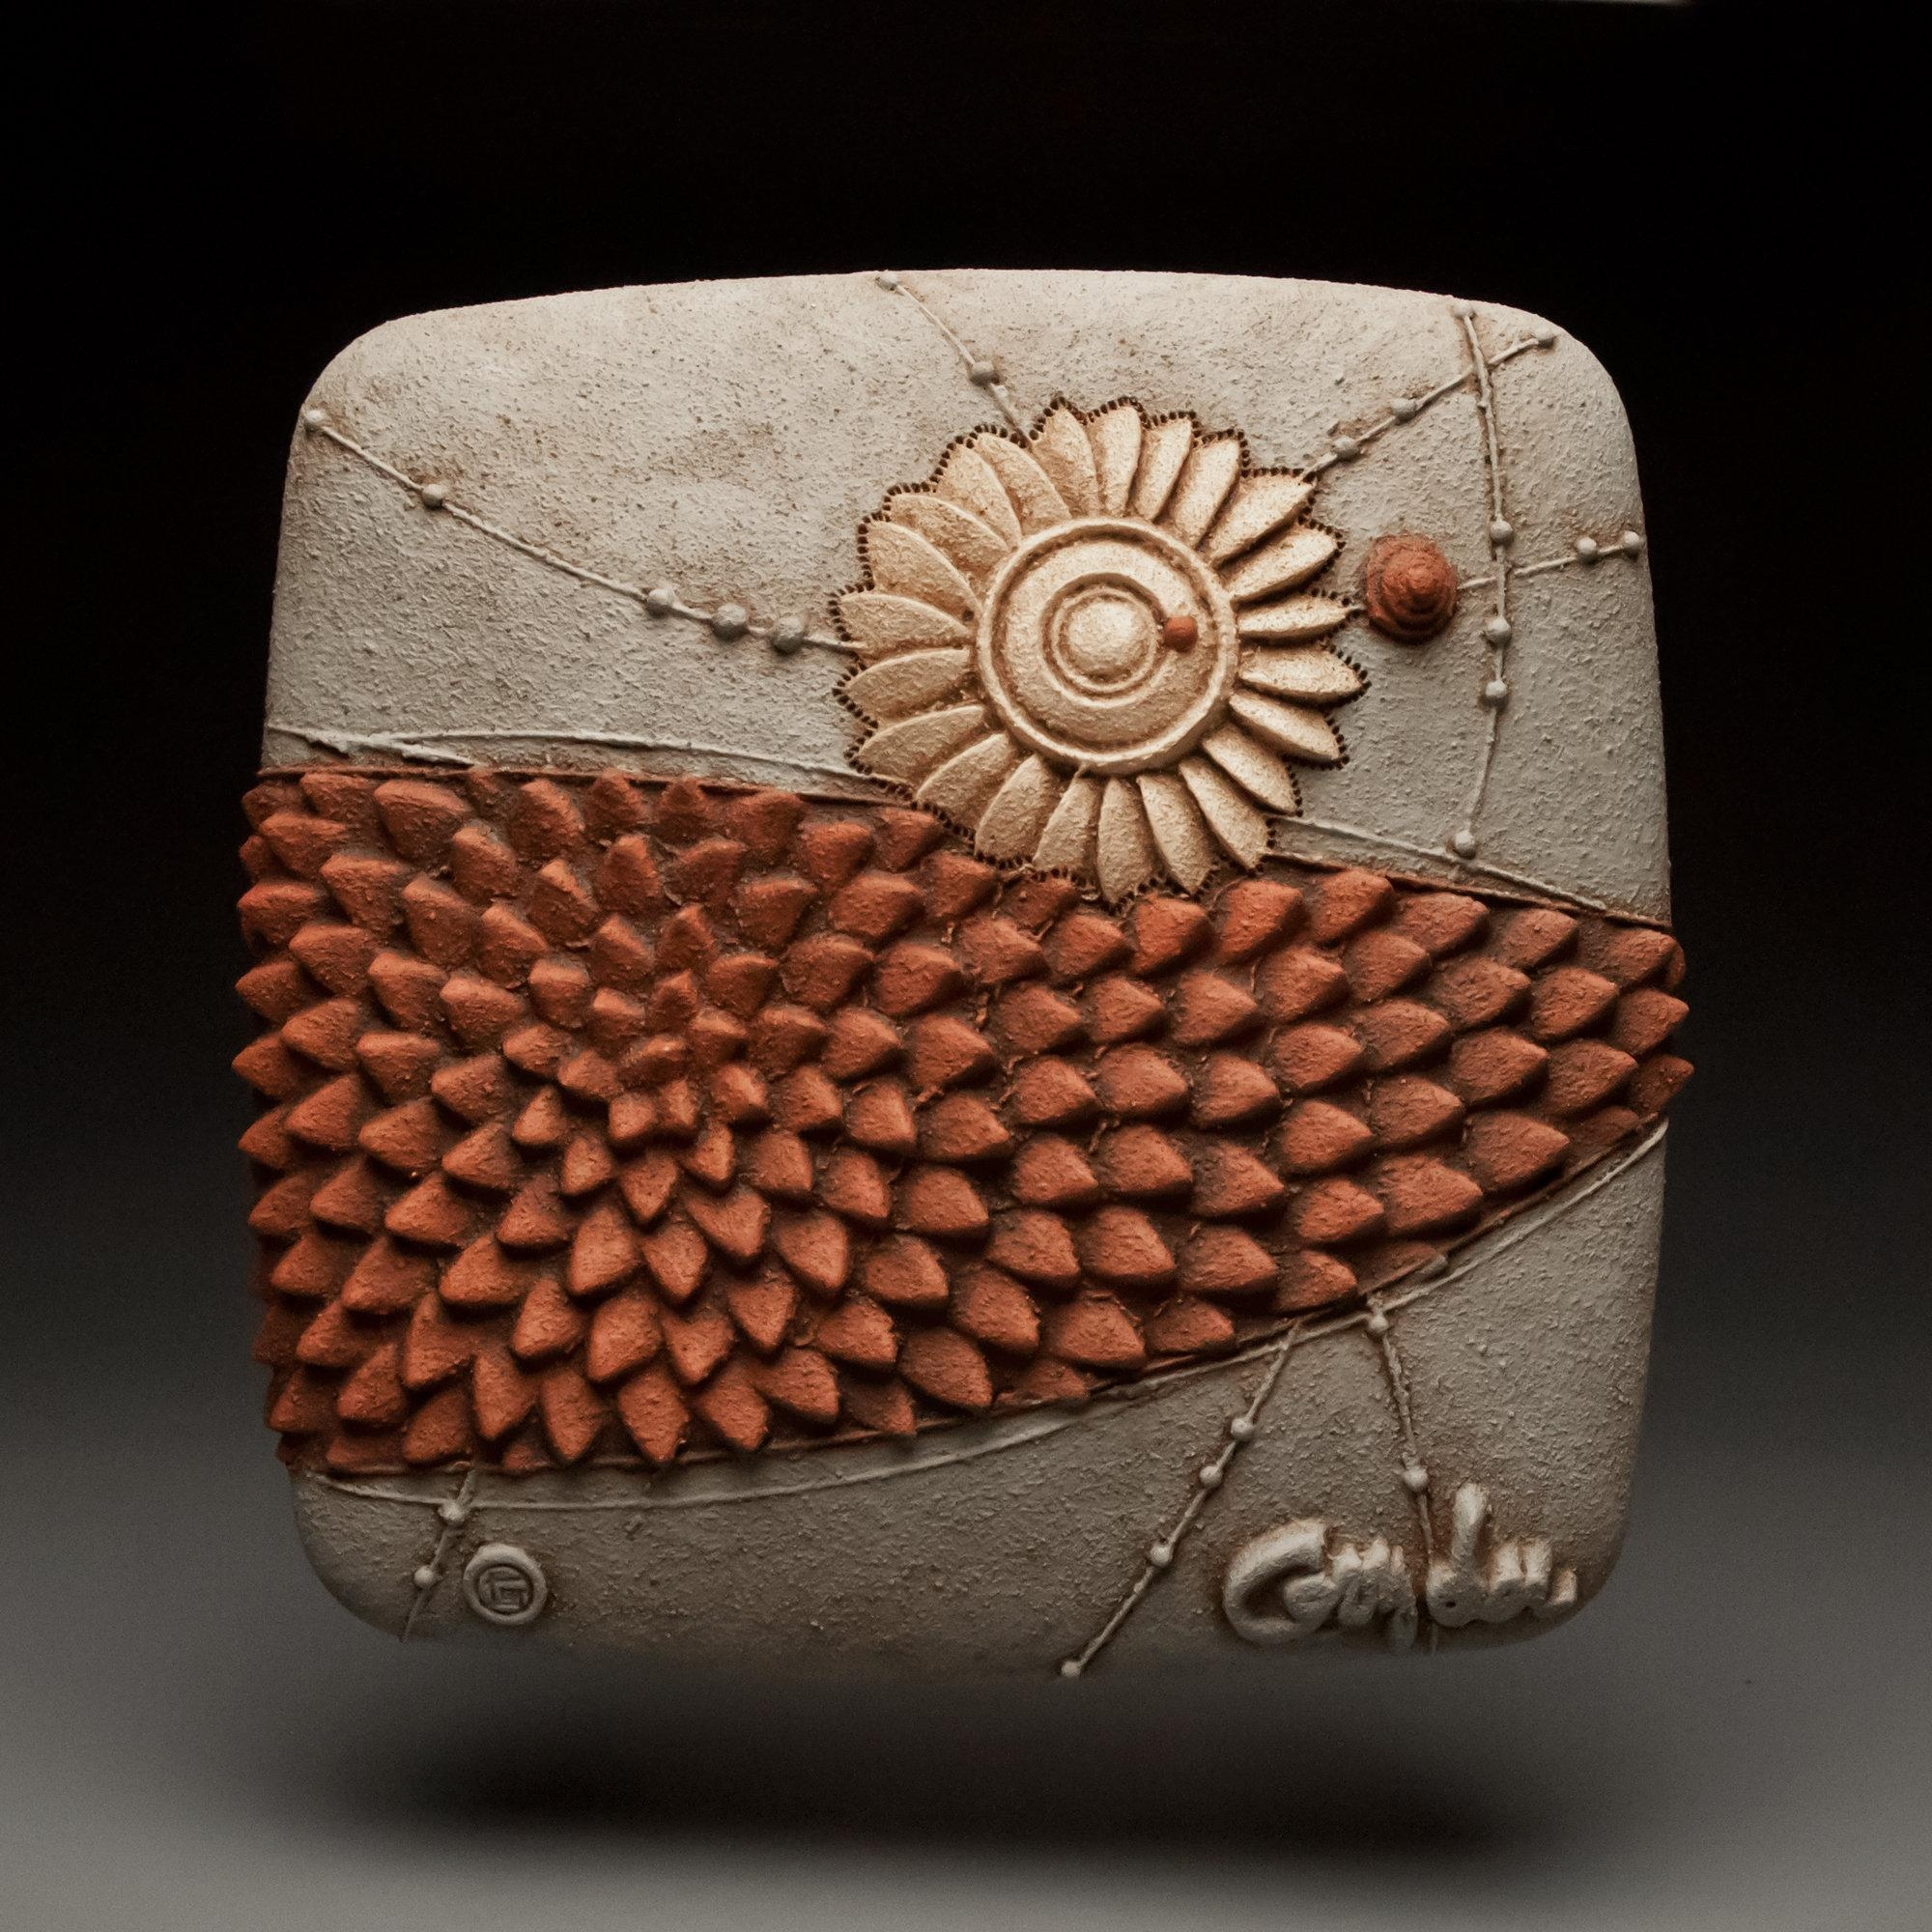 Fresh Movechristopher Gryder (Ceramic Wall Sculpture) | Artful With Regard To Large Ceramic Wall Art (View 8 of 20)